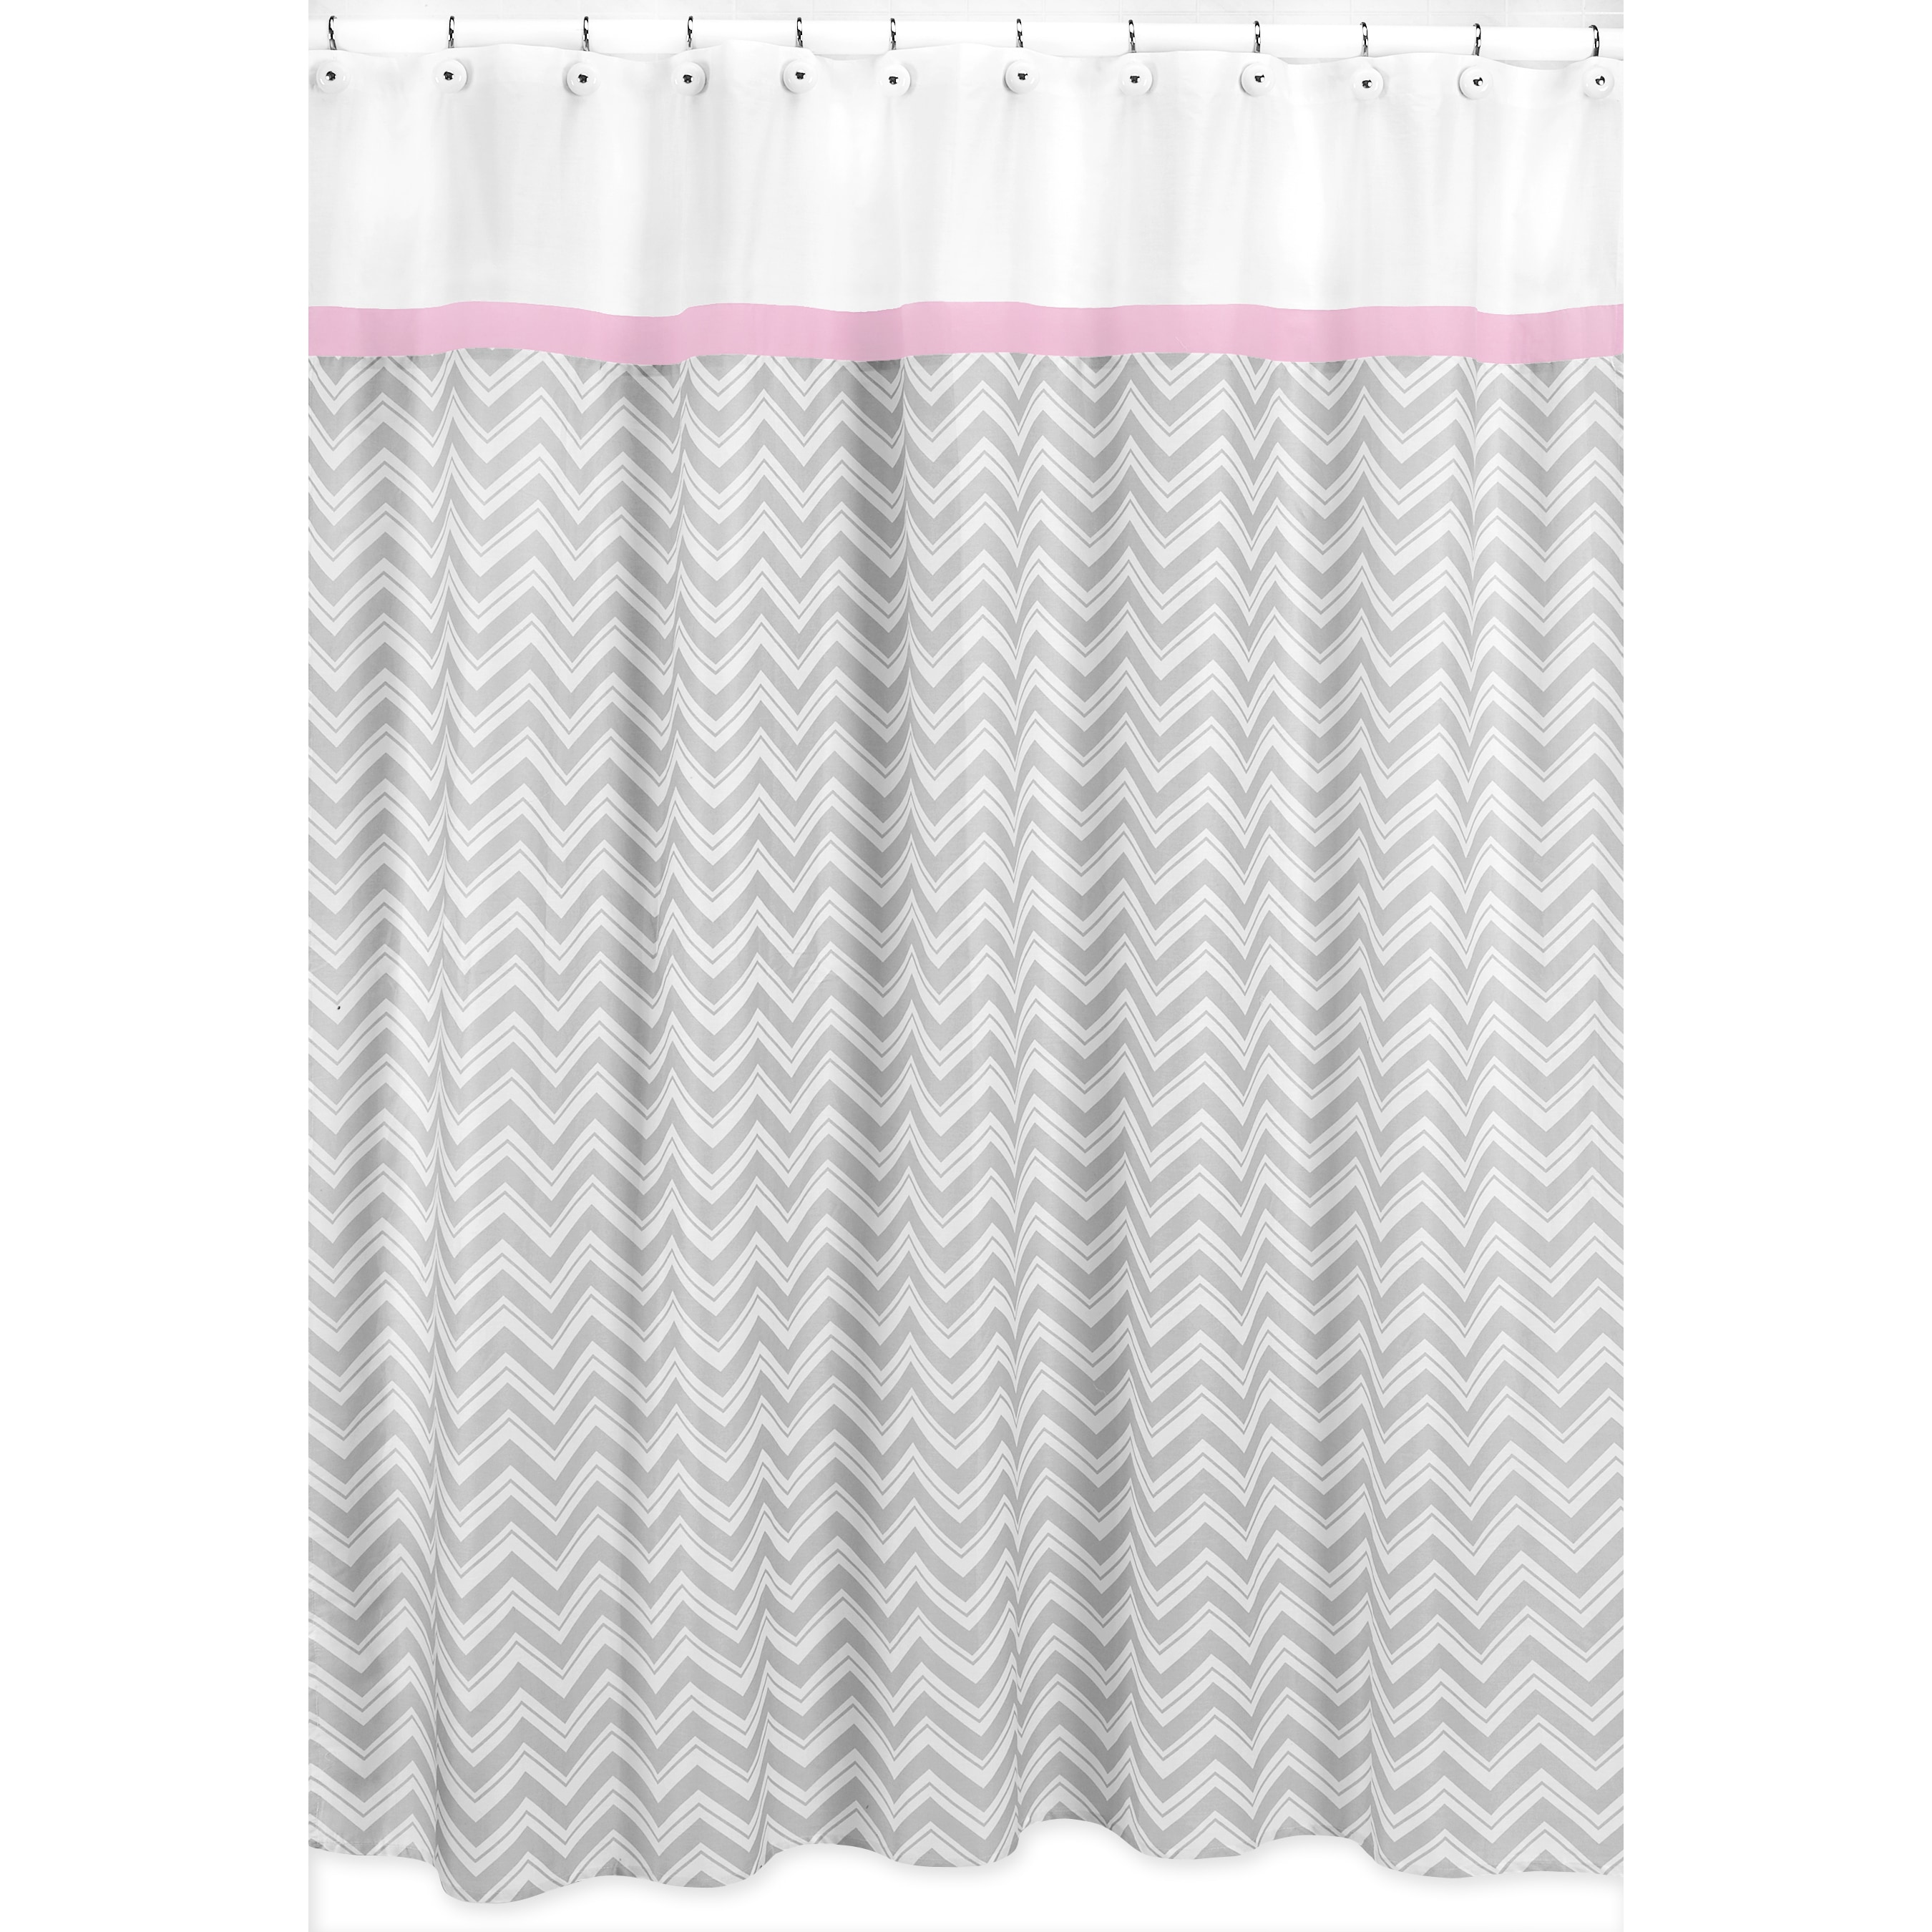 Ordinaire Shop Sweet Jojo Designs Chevron Grey Shower Curtain Pink Trim   Free  Shipping On Orders Over $45   Overstock.com   8347858